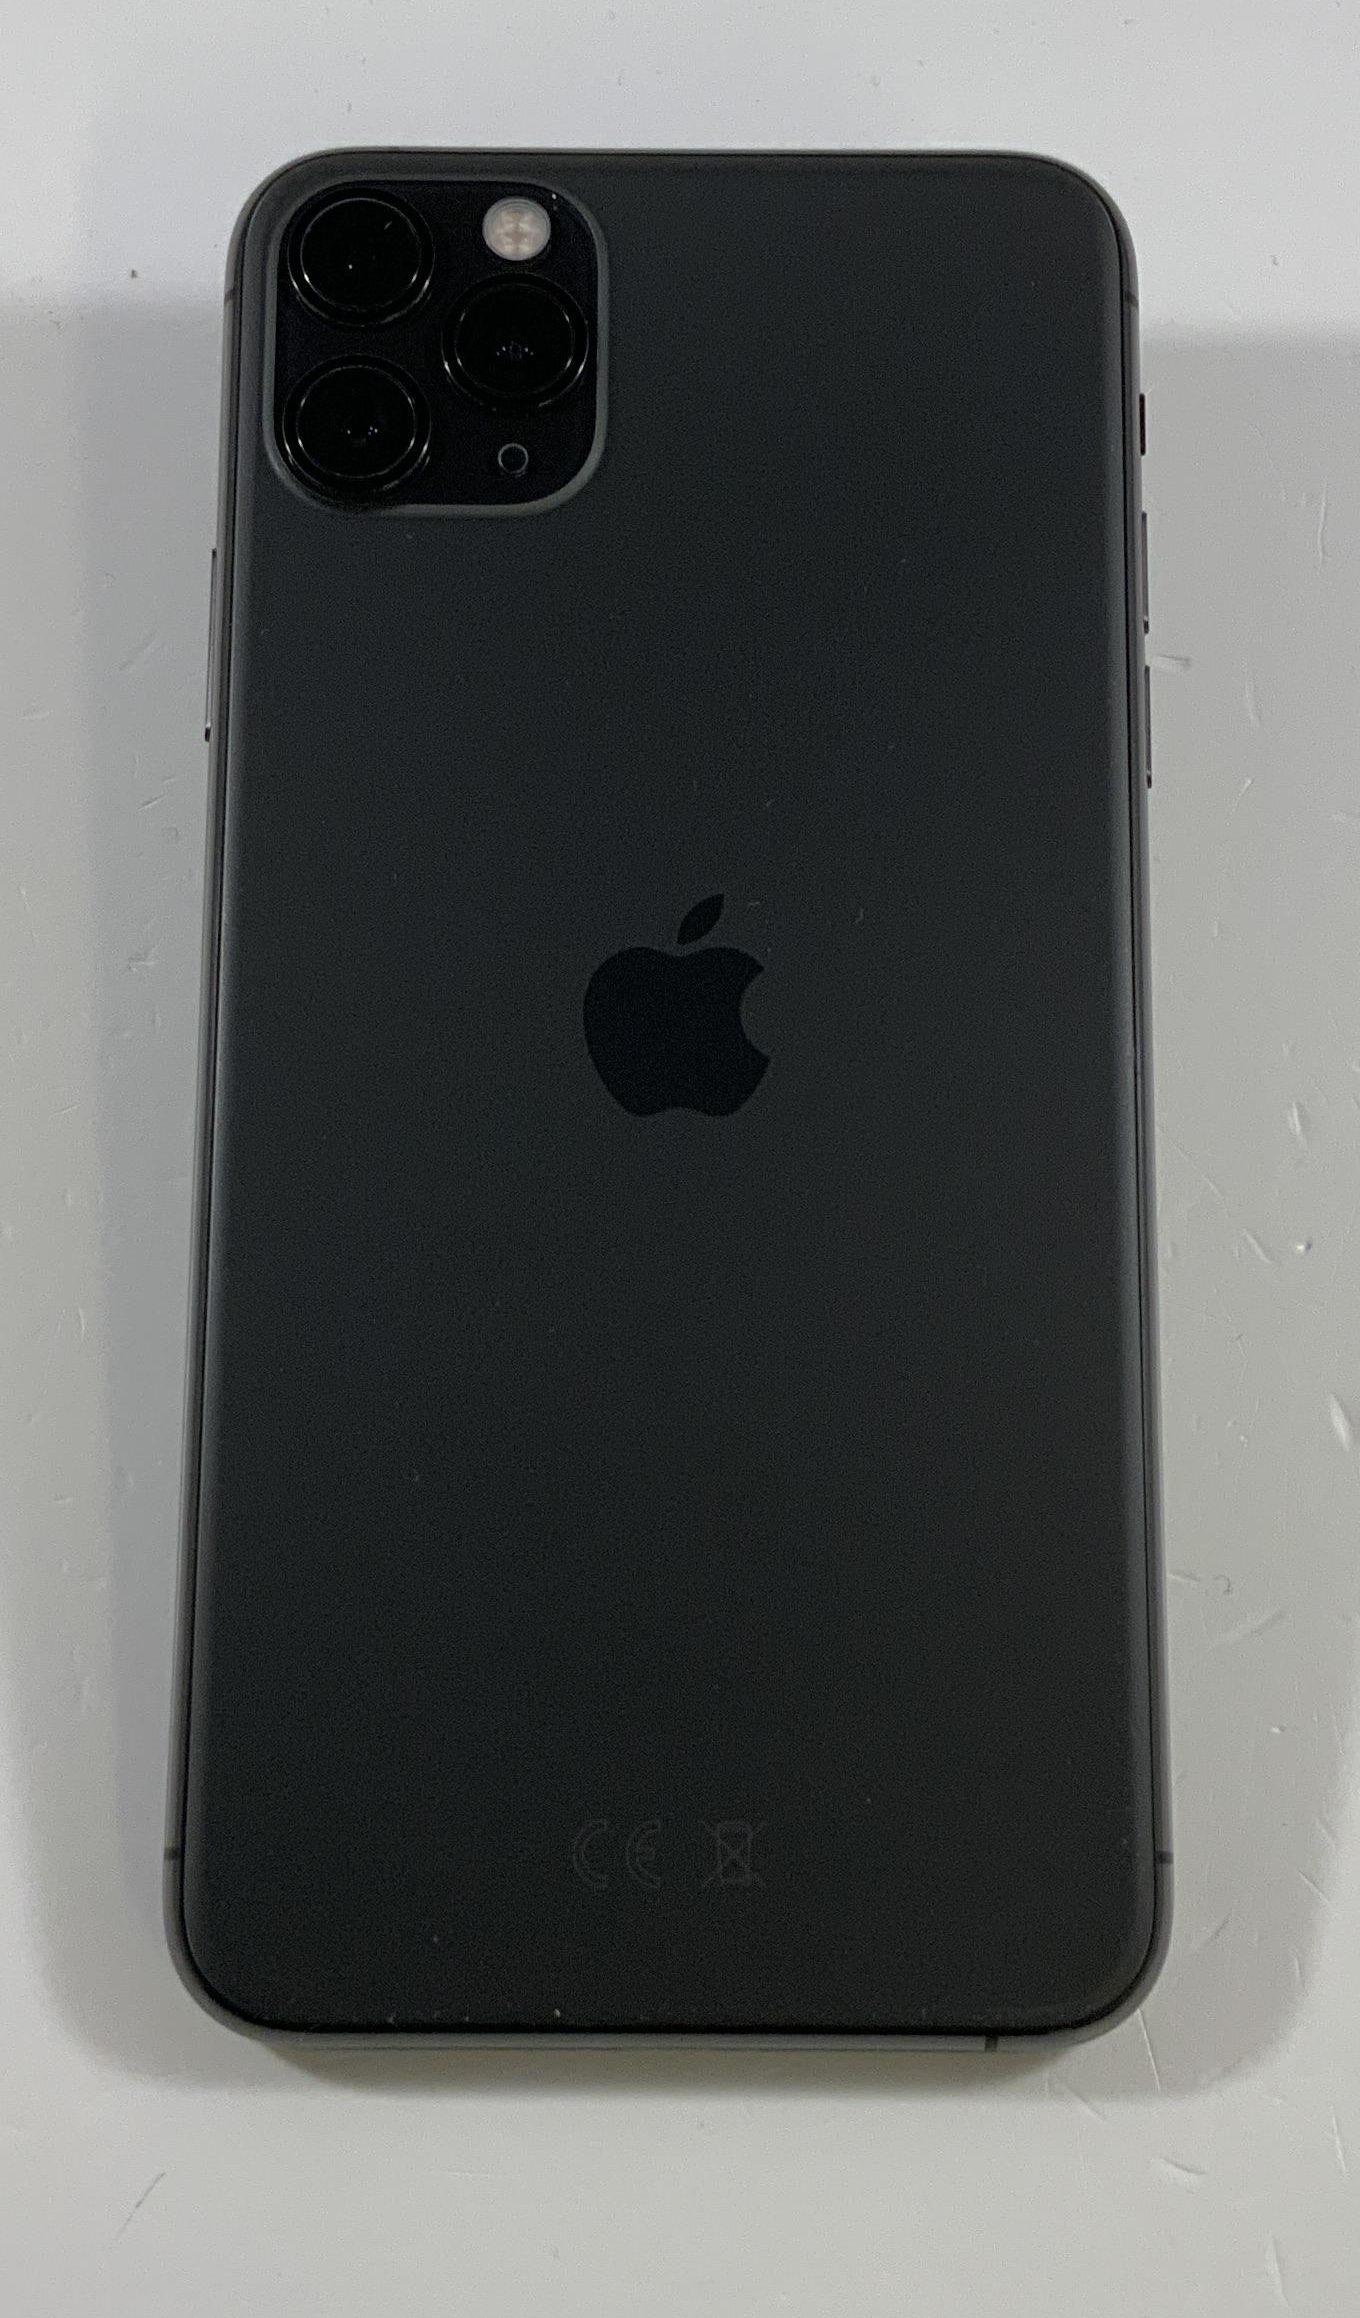 iPhone 11 Pro Max 64GB, 64GB, Space Gray, imagen 2